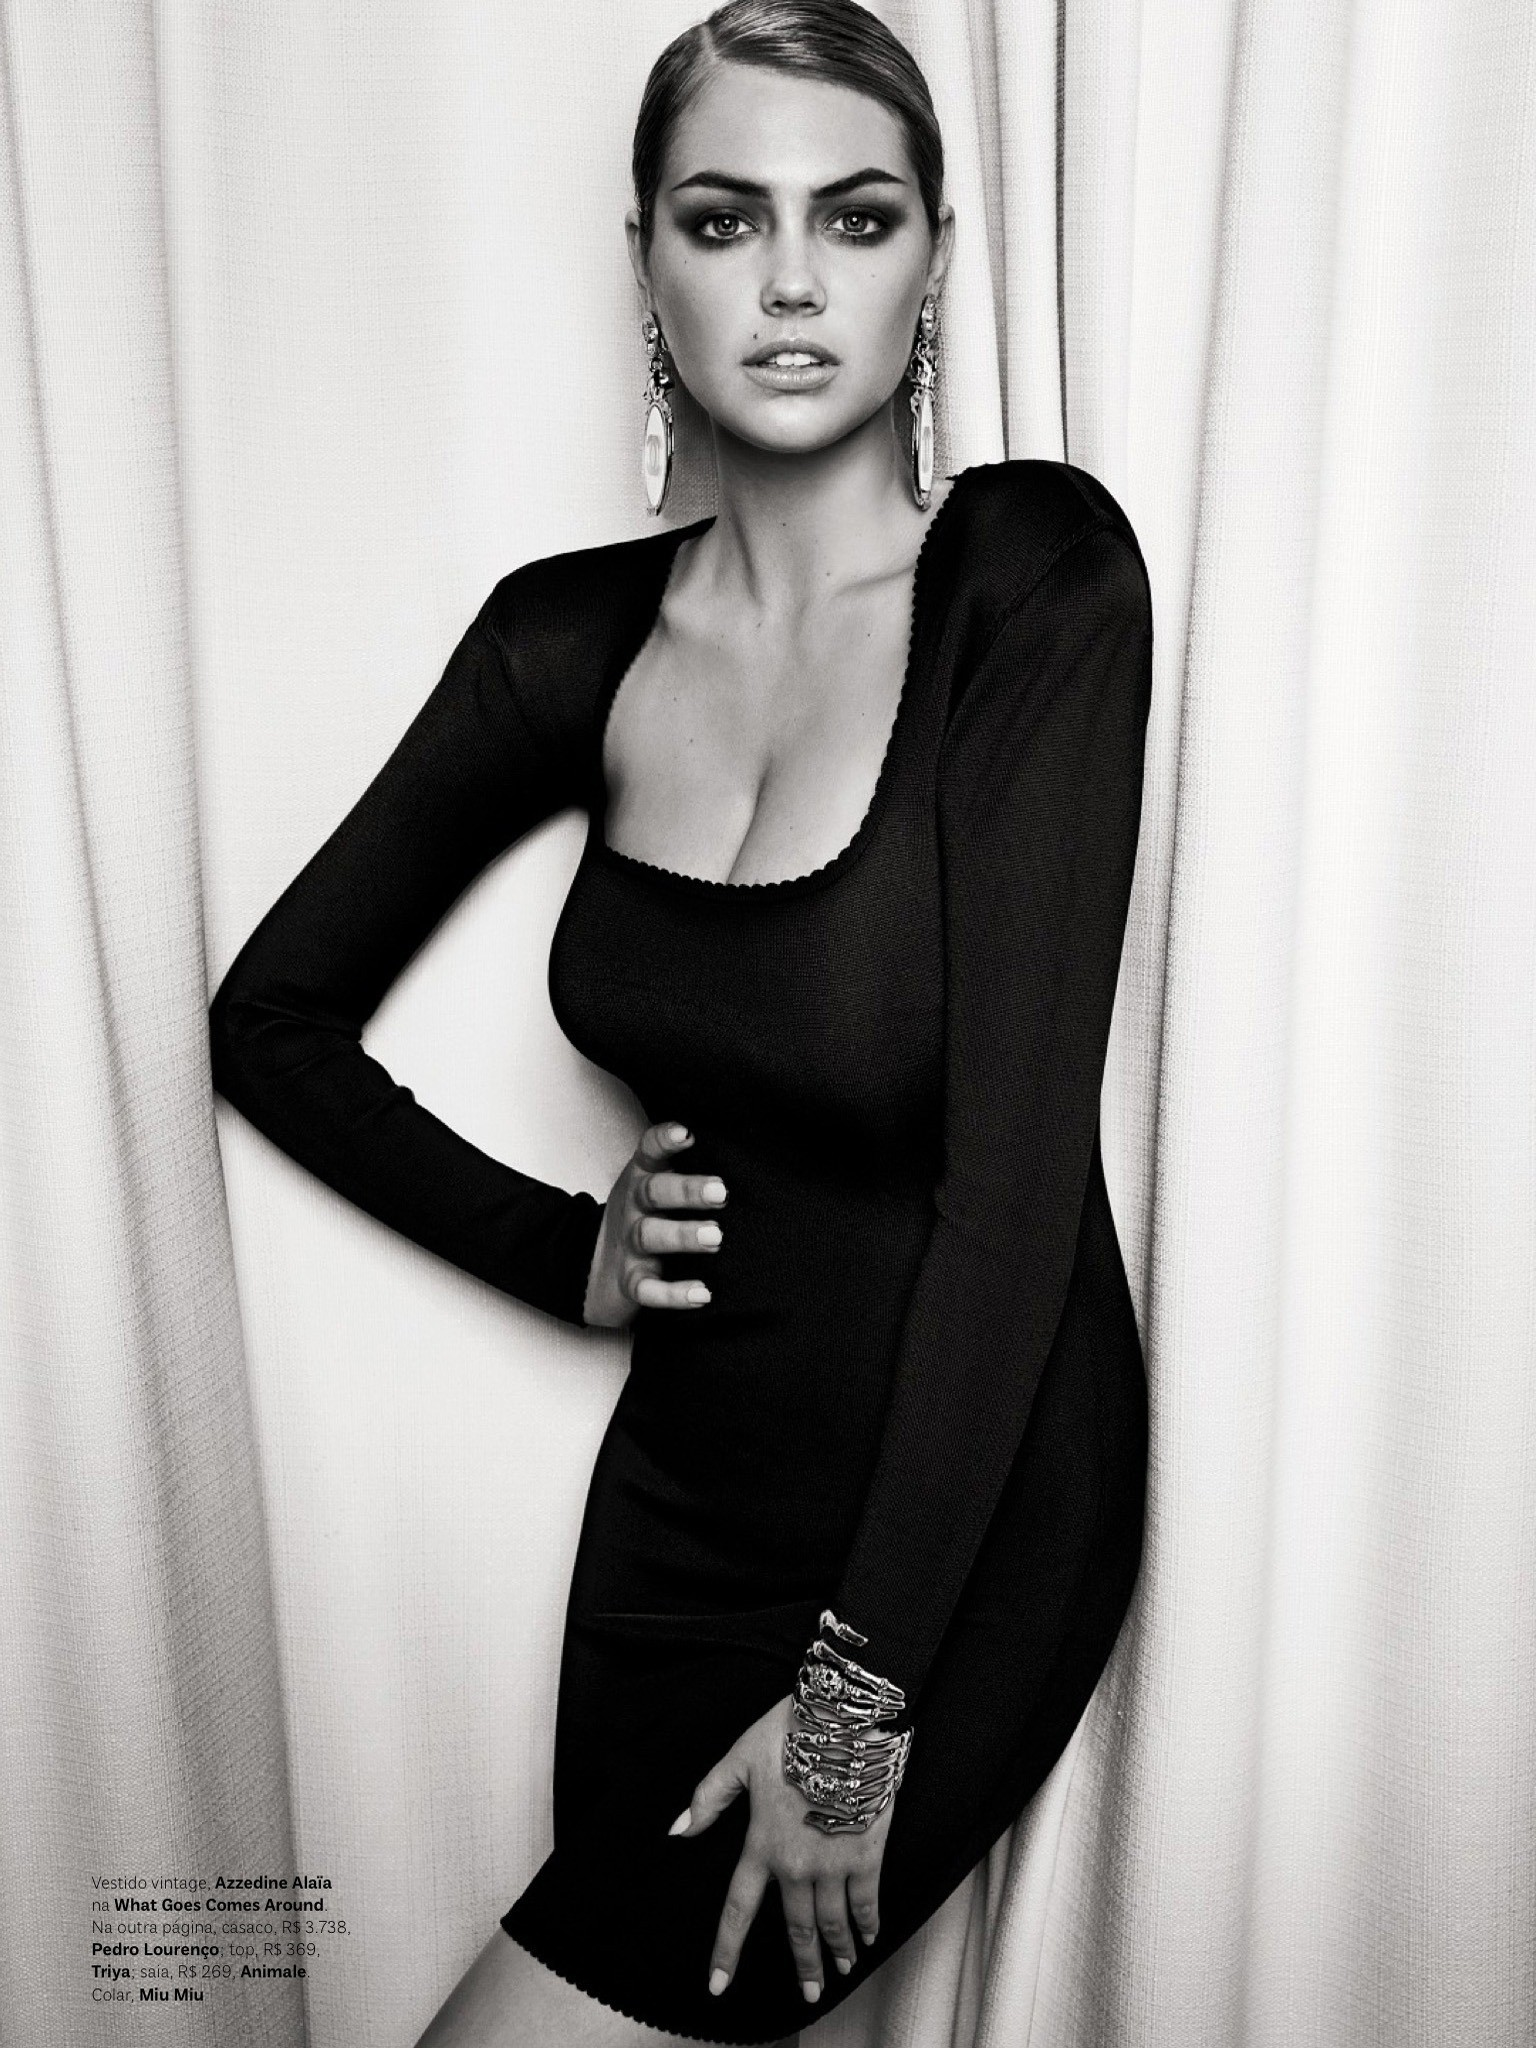 Kate Upton Vogue Brazil 2013 09 Gotceleb